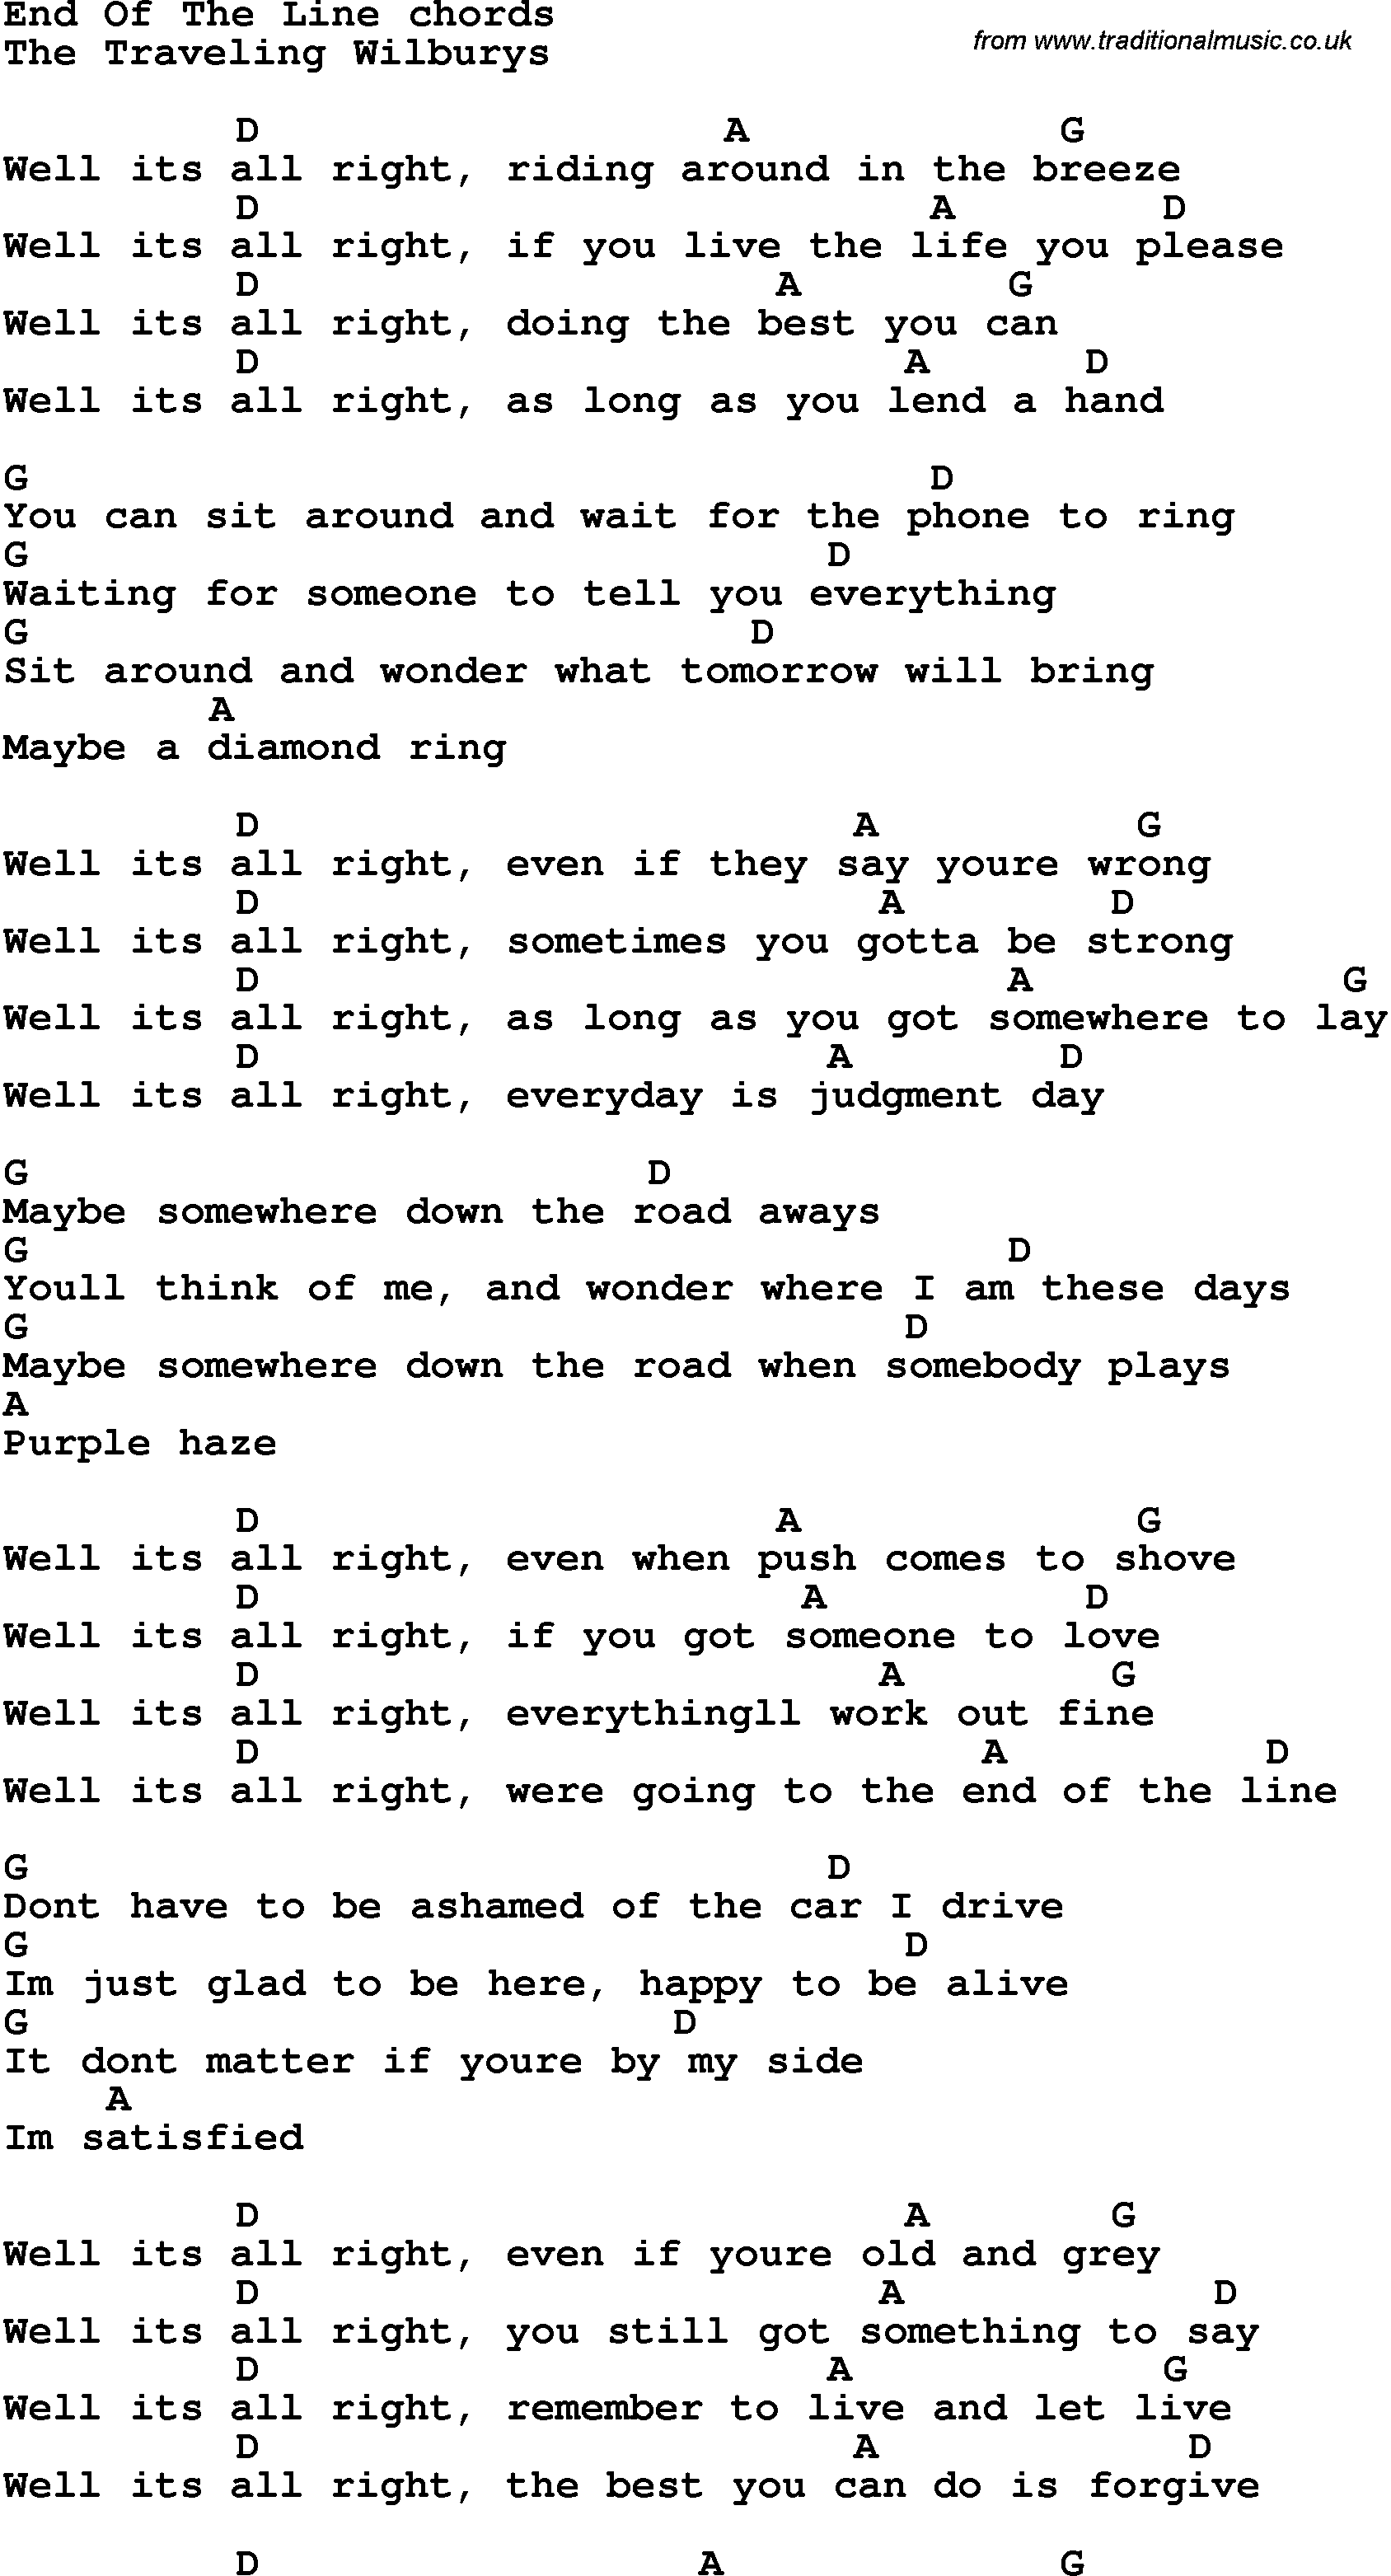 Song Lyrics With Guitar Chords For End Of The Line Sheet Music